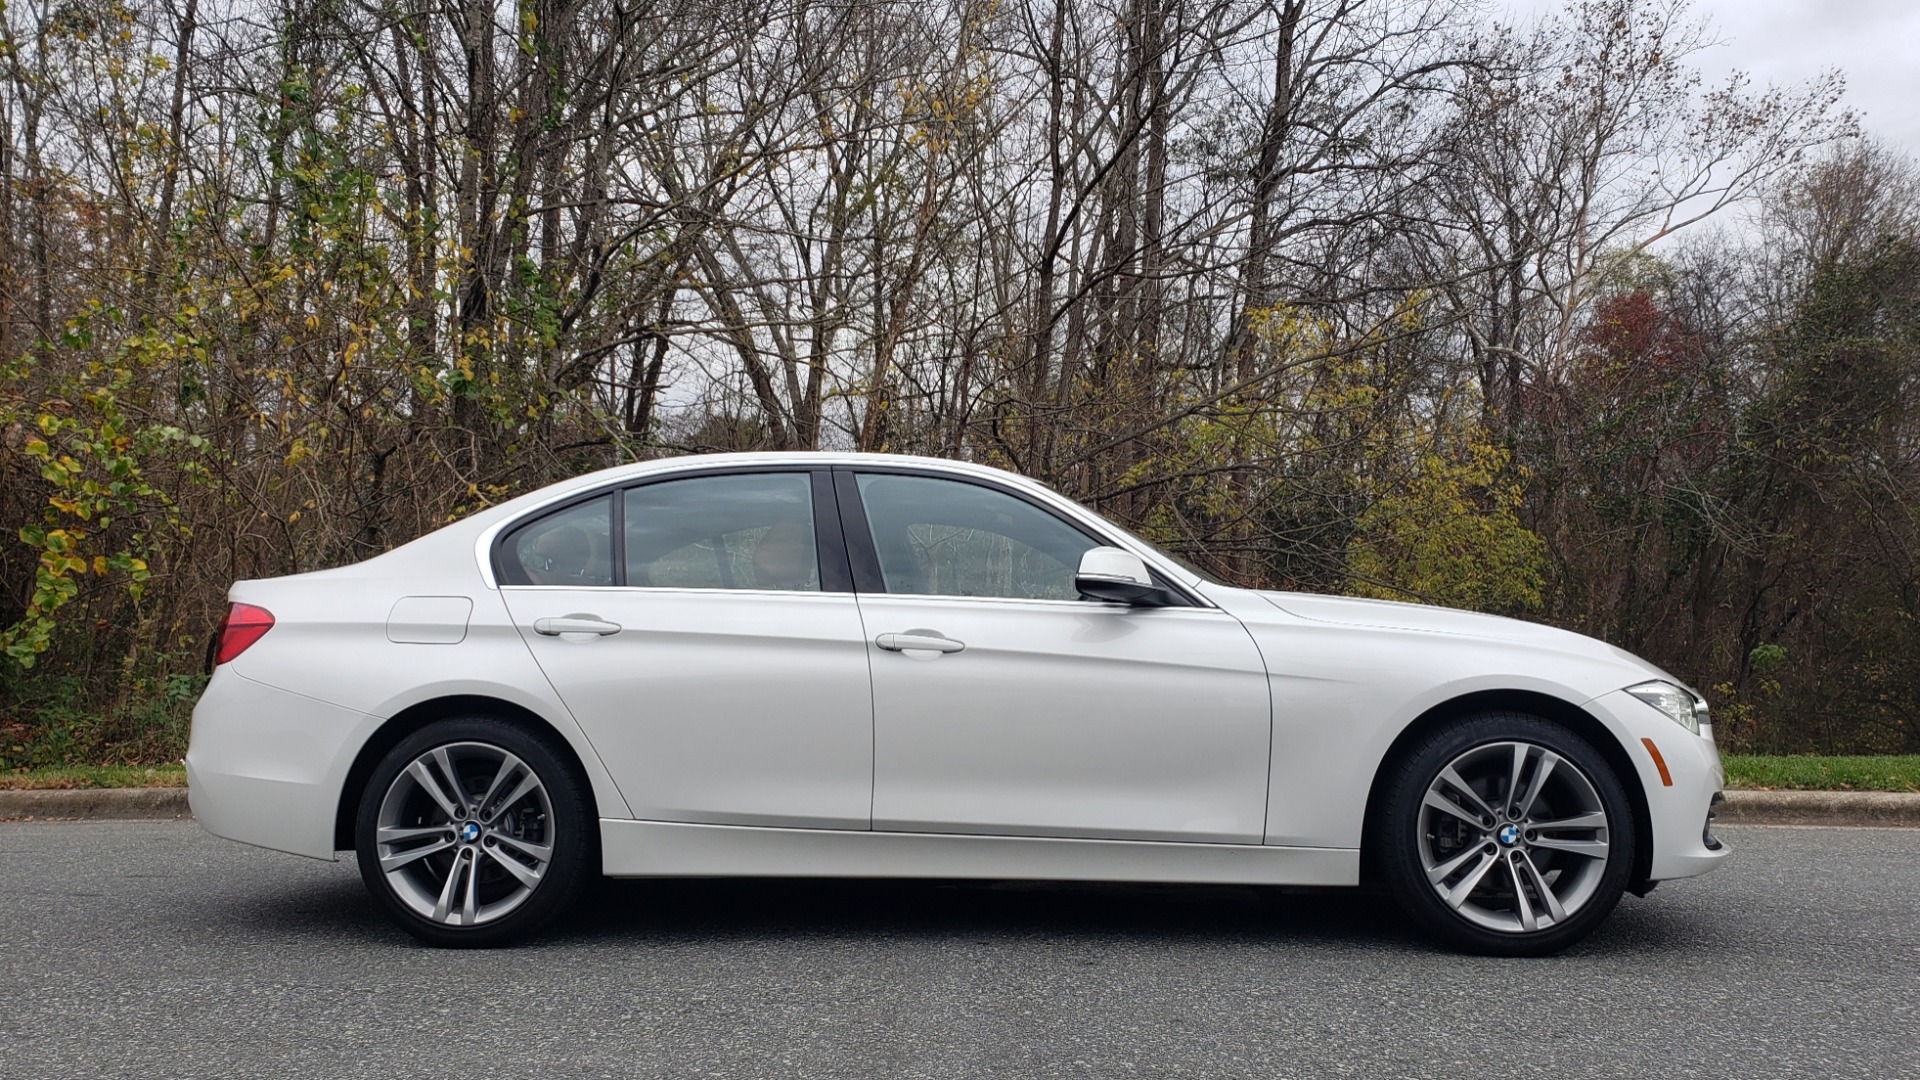 Used 2017 BMW 3 SERIES 330I XDRIVE PREMIUM / NAV / DRVR ASST / CLD WTHR / REARVIEW for sale $24,695 at Formula Imports in Charlotte NC 28227 5